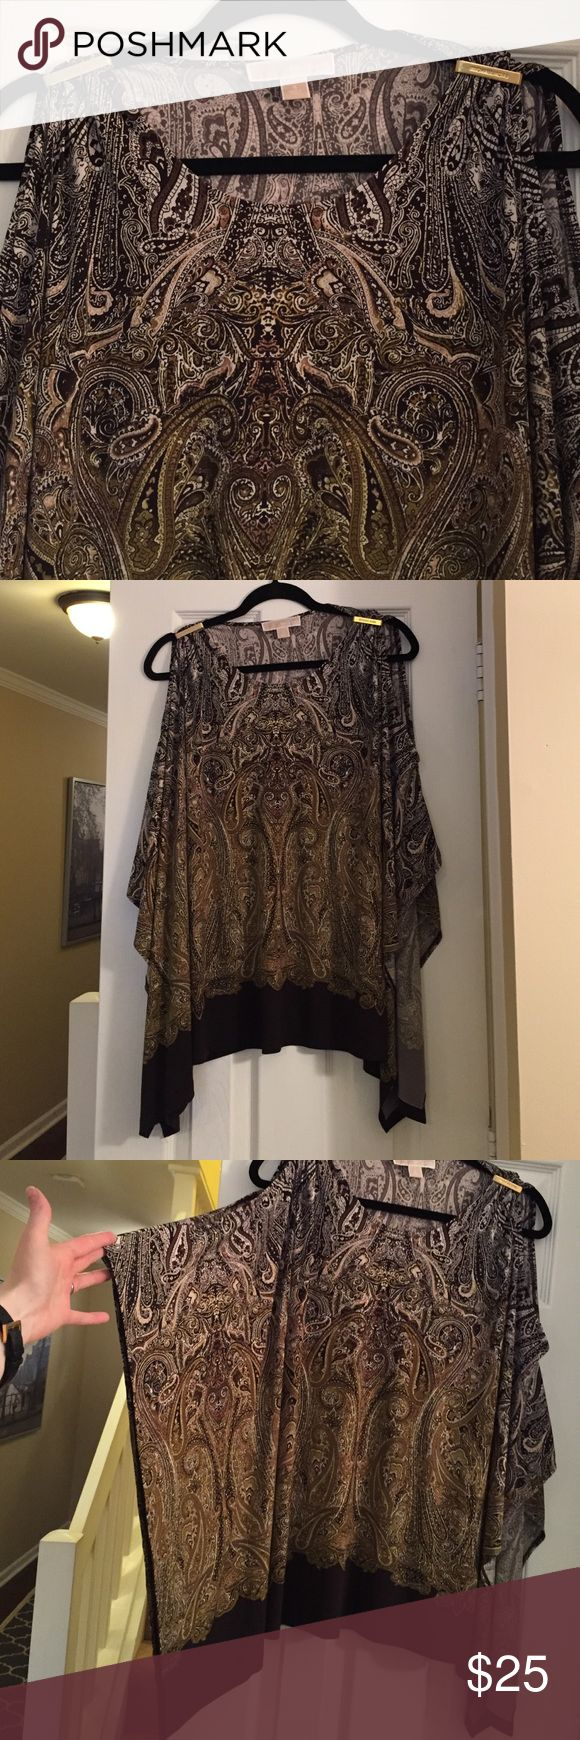 Michael kors batwing top Brown and green paisley long sleeve batwing style top with slit in both sleeves, attached at shoulder with gold Michael Kors emblem bar Michael Kors Tops